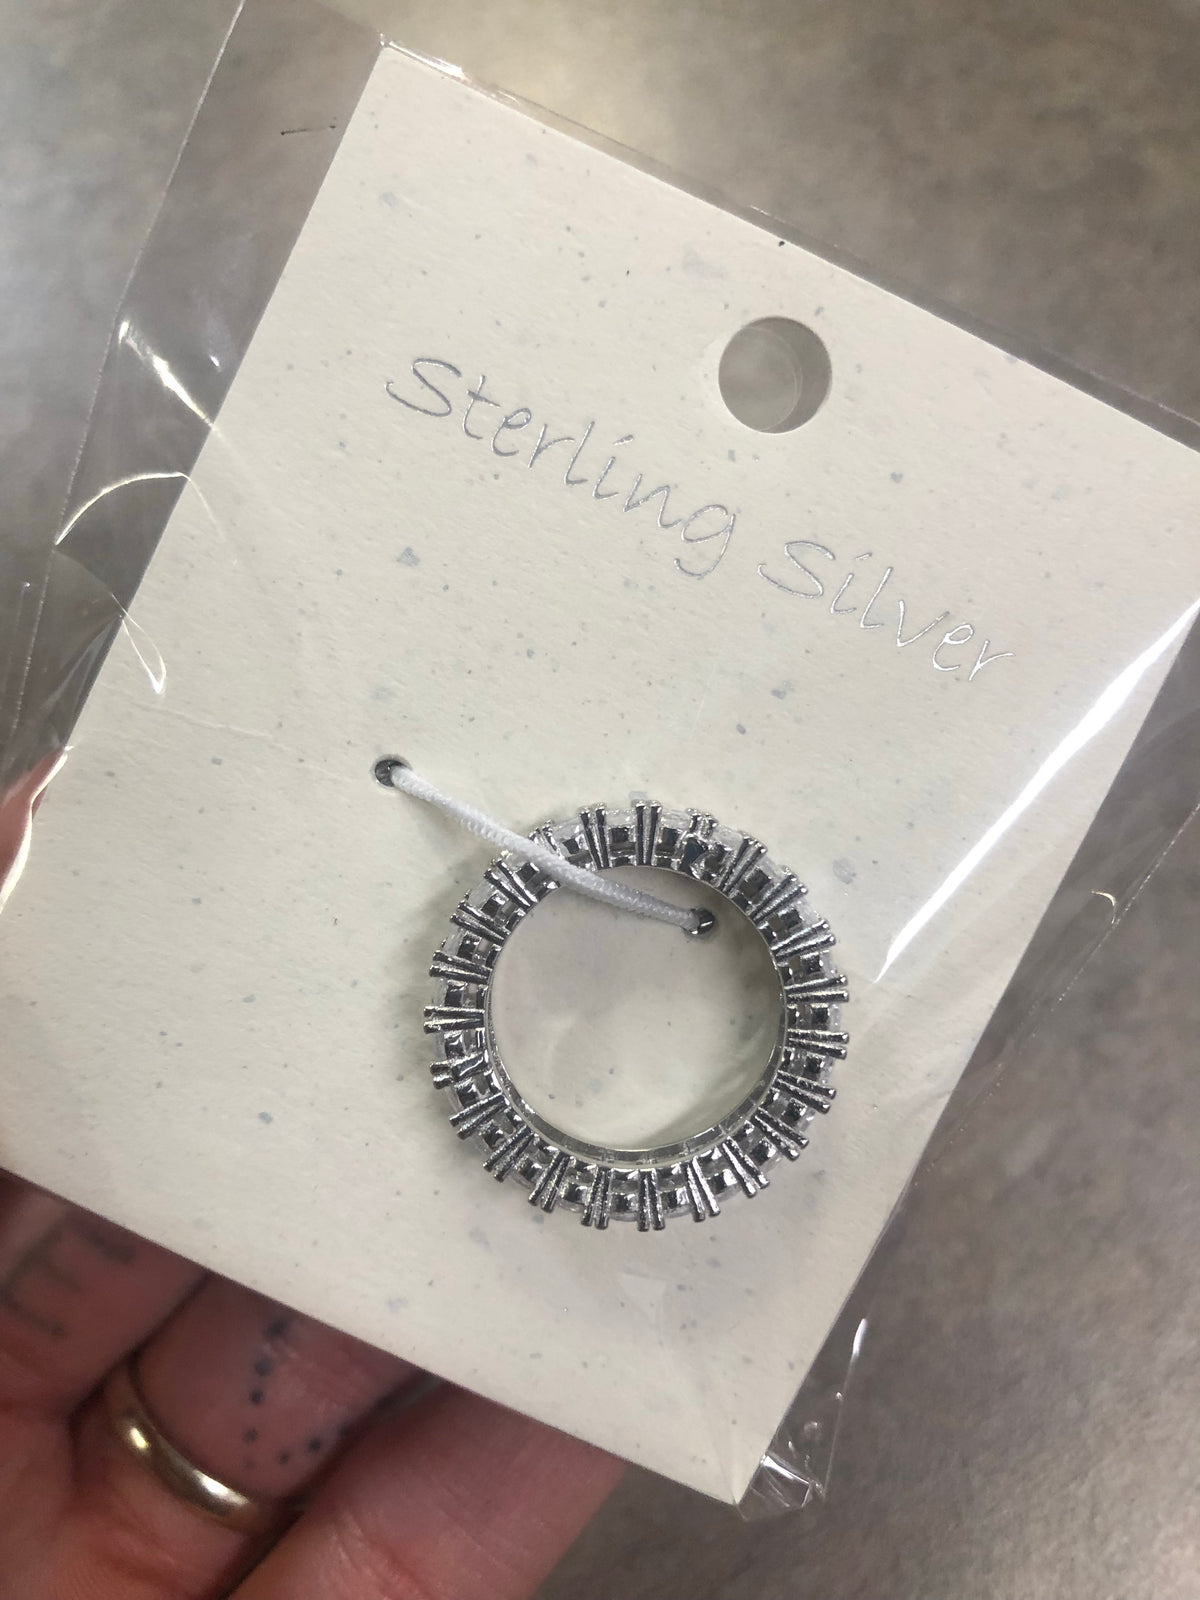 circle ring with diamond studs all around the ring